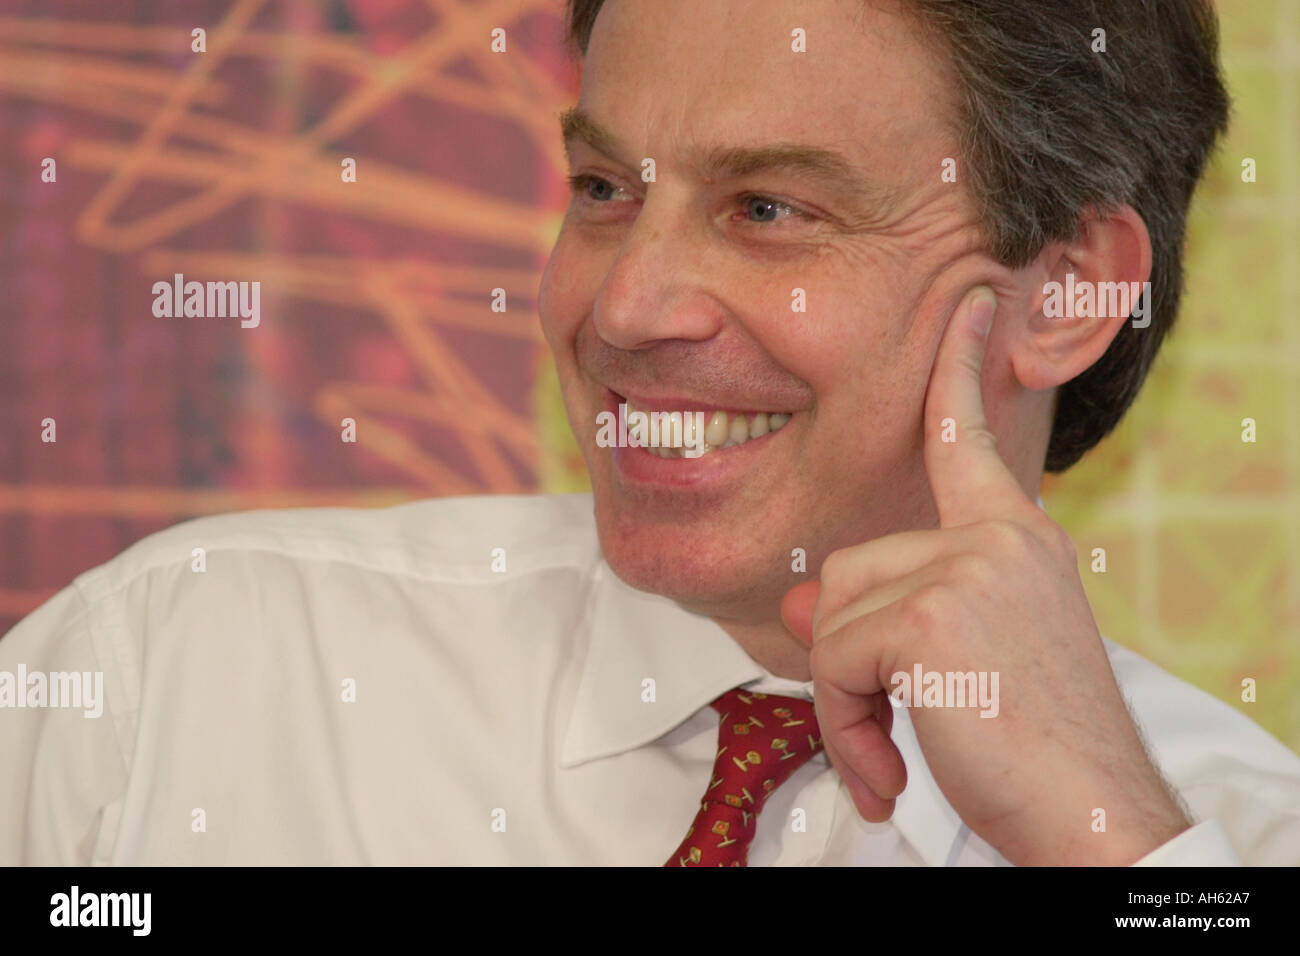 Hand gestures from Prime Minister Tony Blair while speaking at a political event in UK - Stock Image